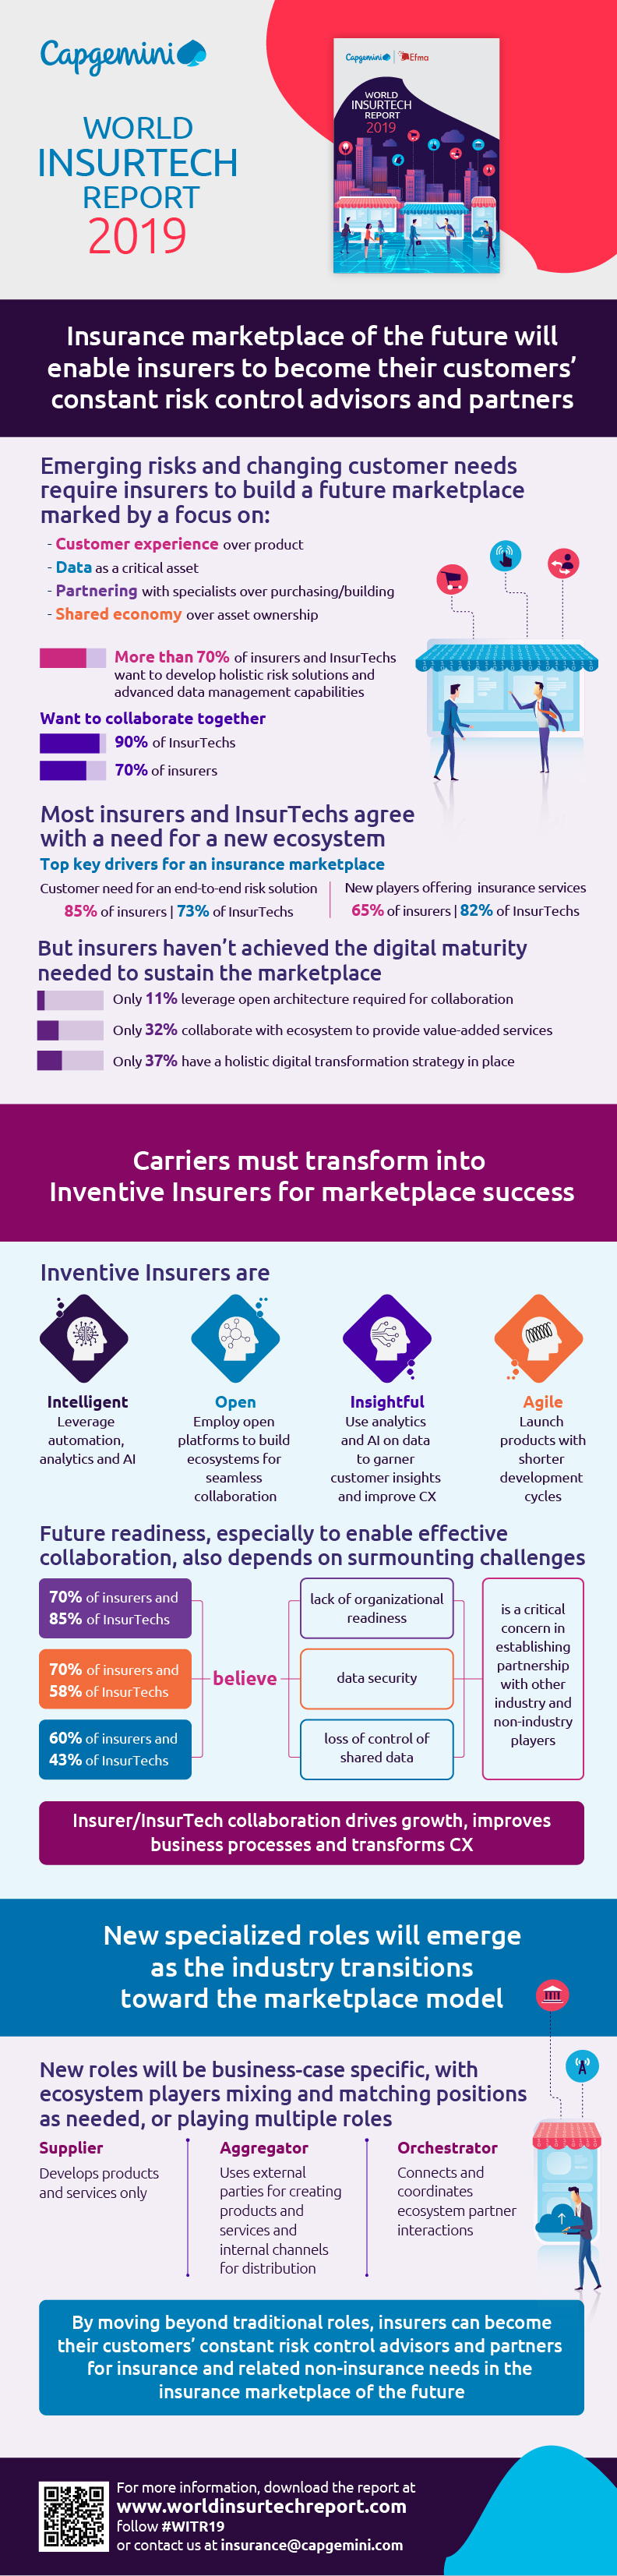 Transforming into Inventive Insurer for Marketplace Successs